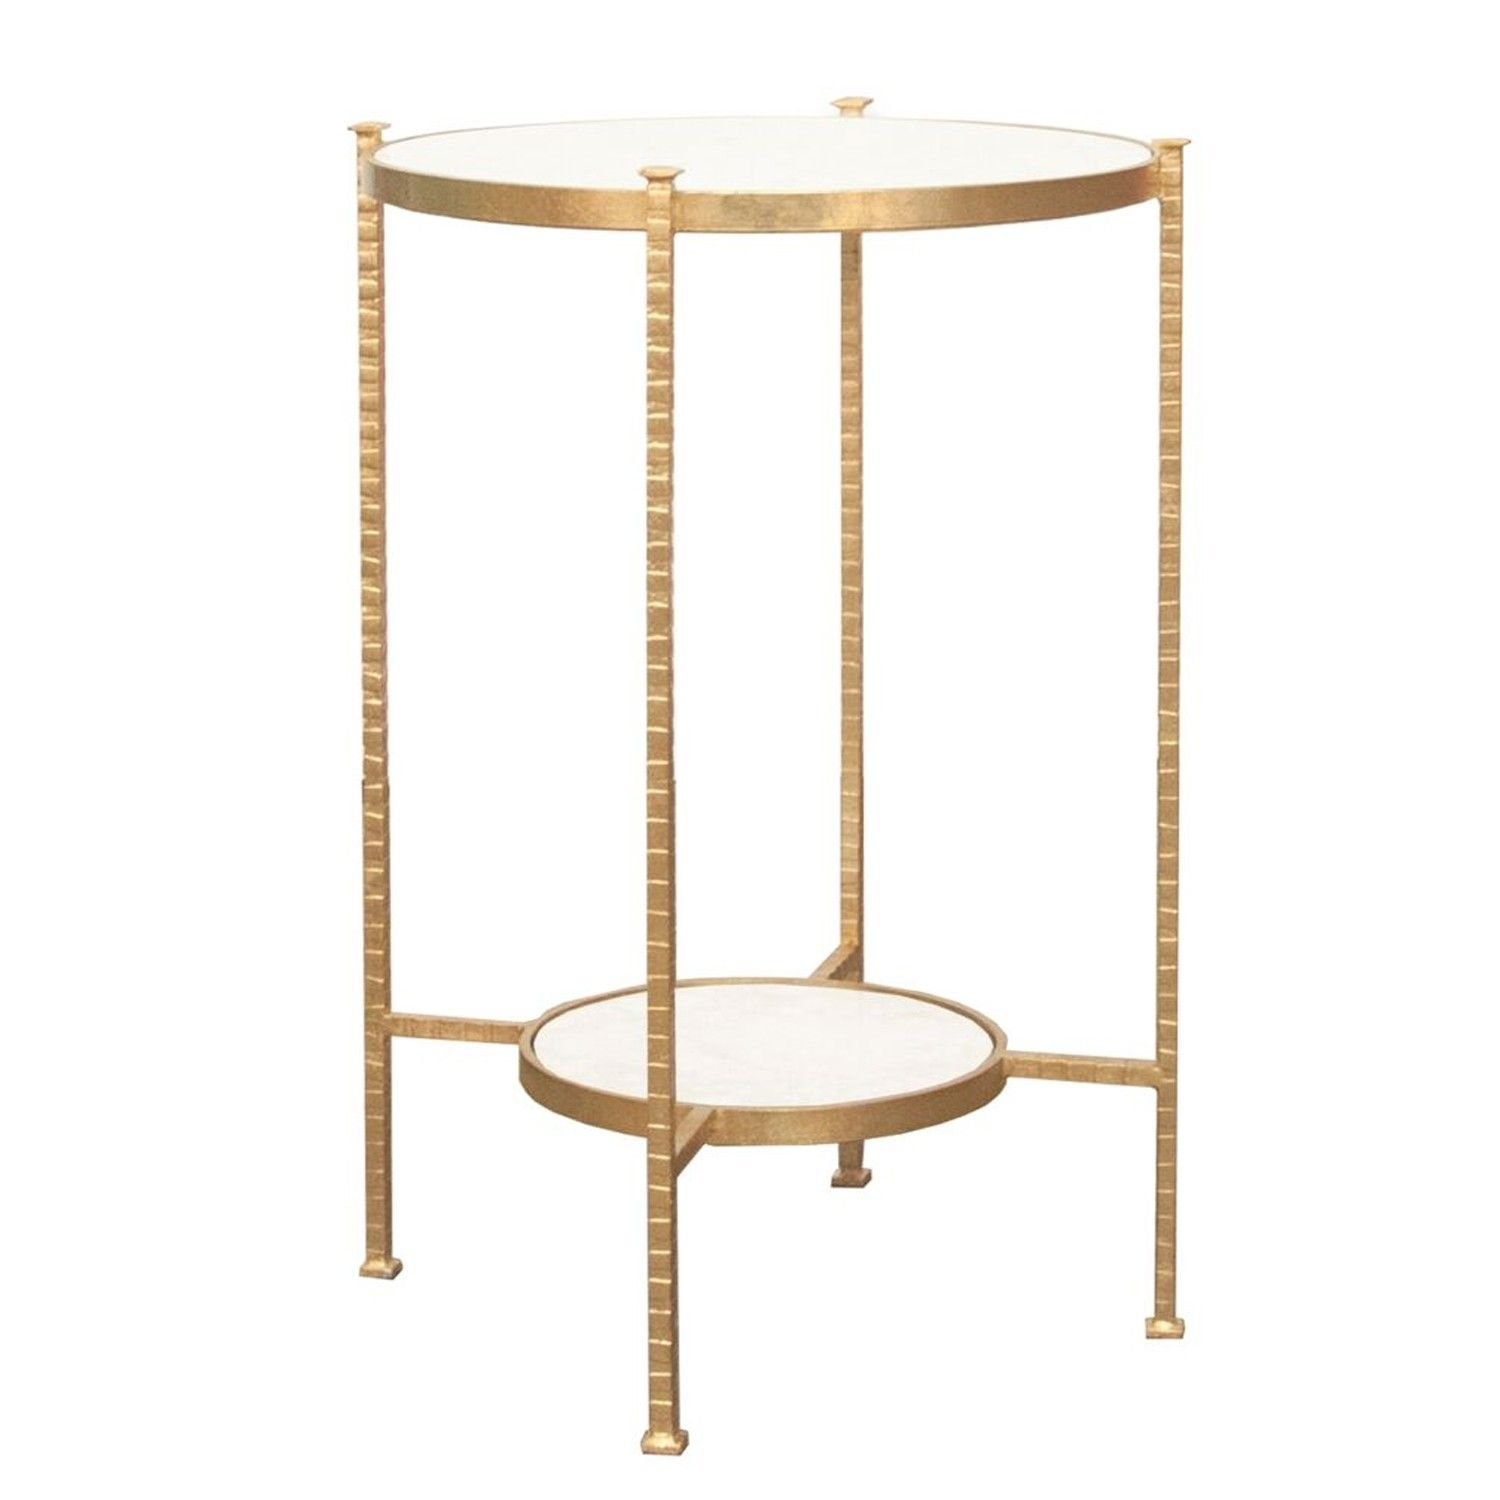 worlds away cory side table gold tables end hammered metal accent round two tier iron with white carrara marble top leaf wood plans glass shelf black wine rack inch tall console